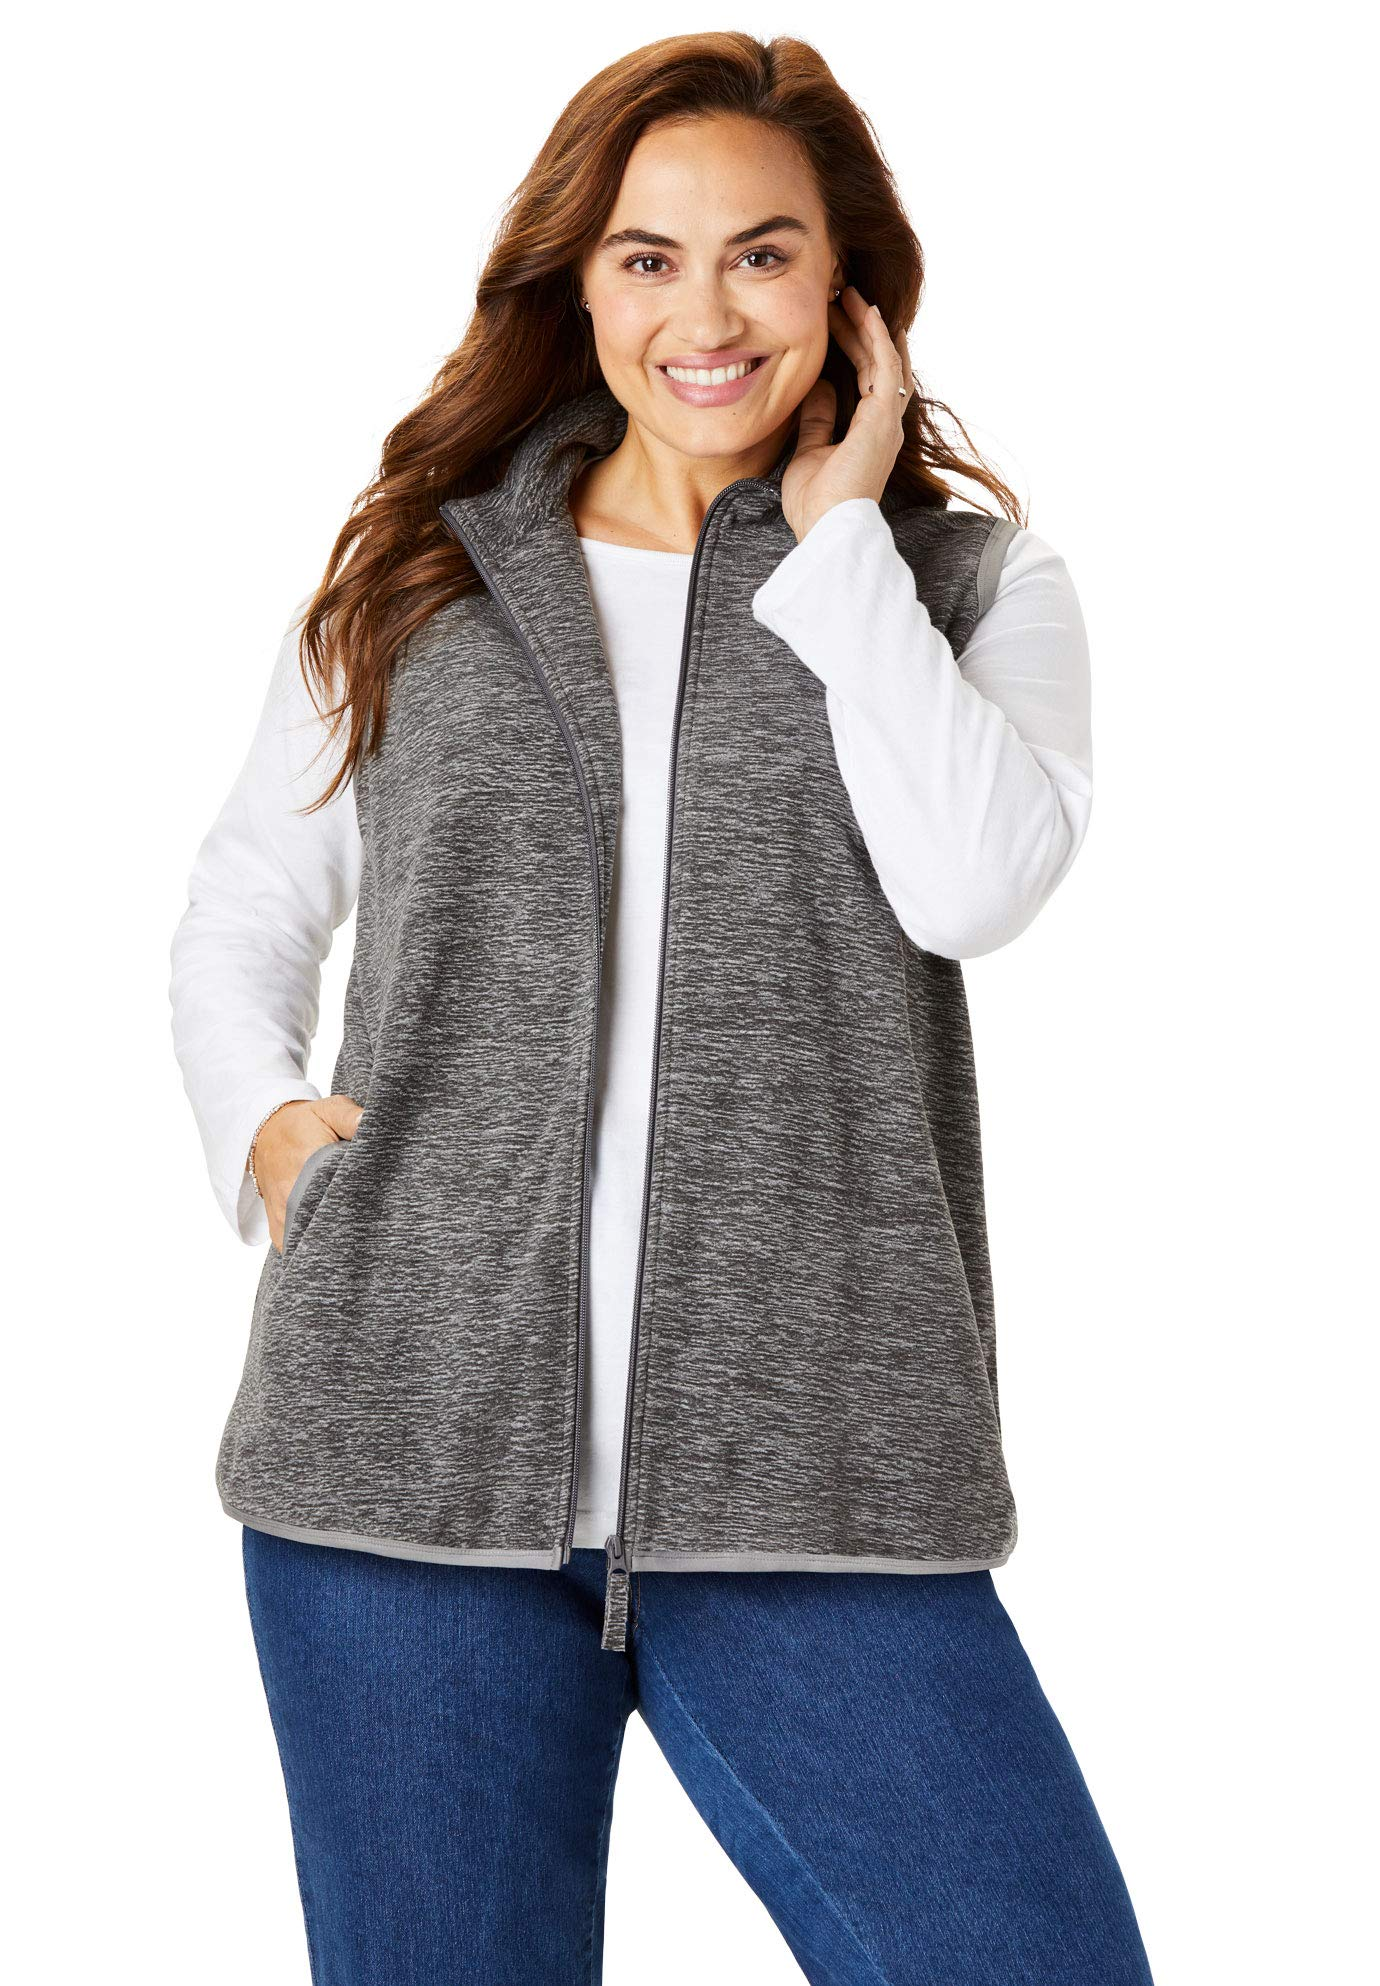 Woman Within Women's Plus Size Zip-Front Microfleece Vest - Grey Marled, 3X by Woman Within